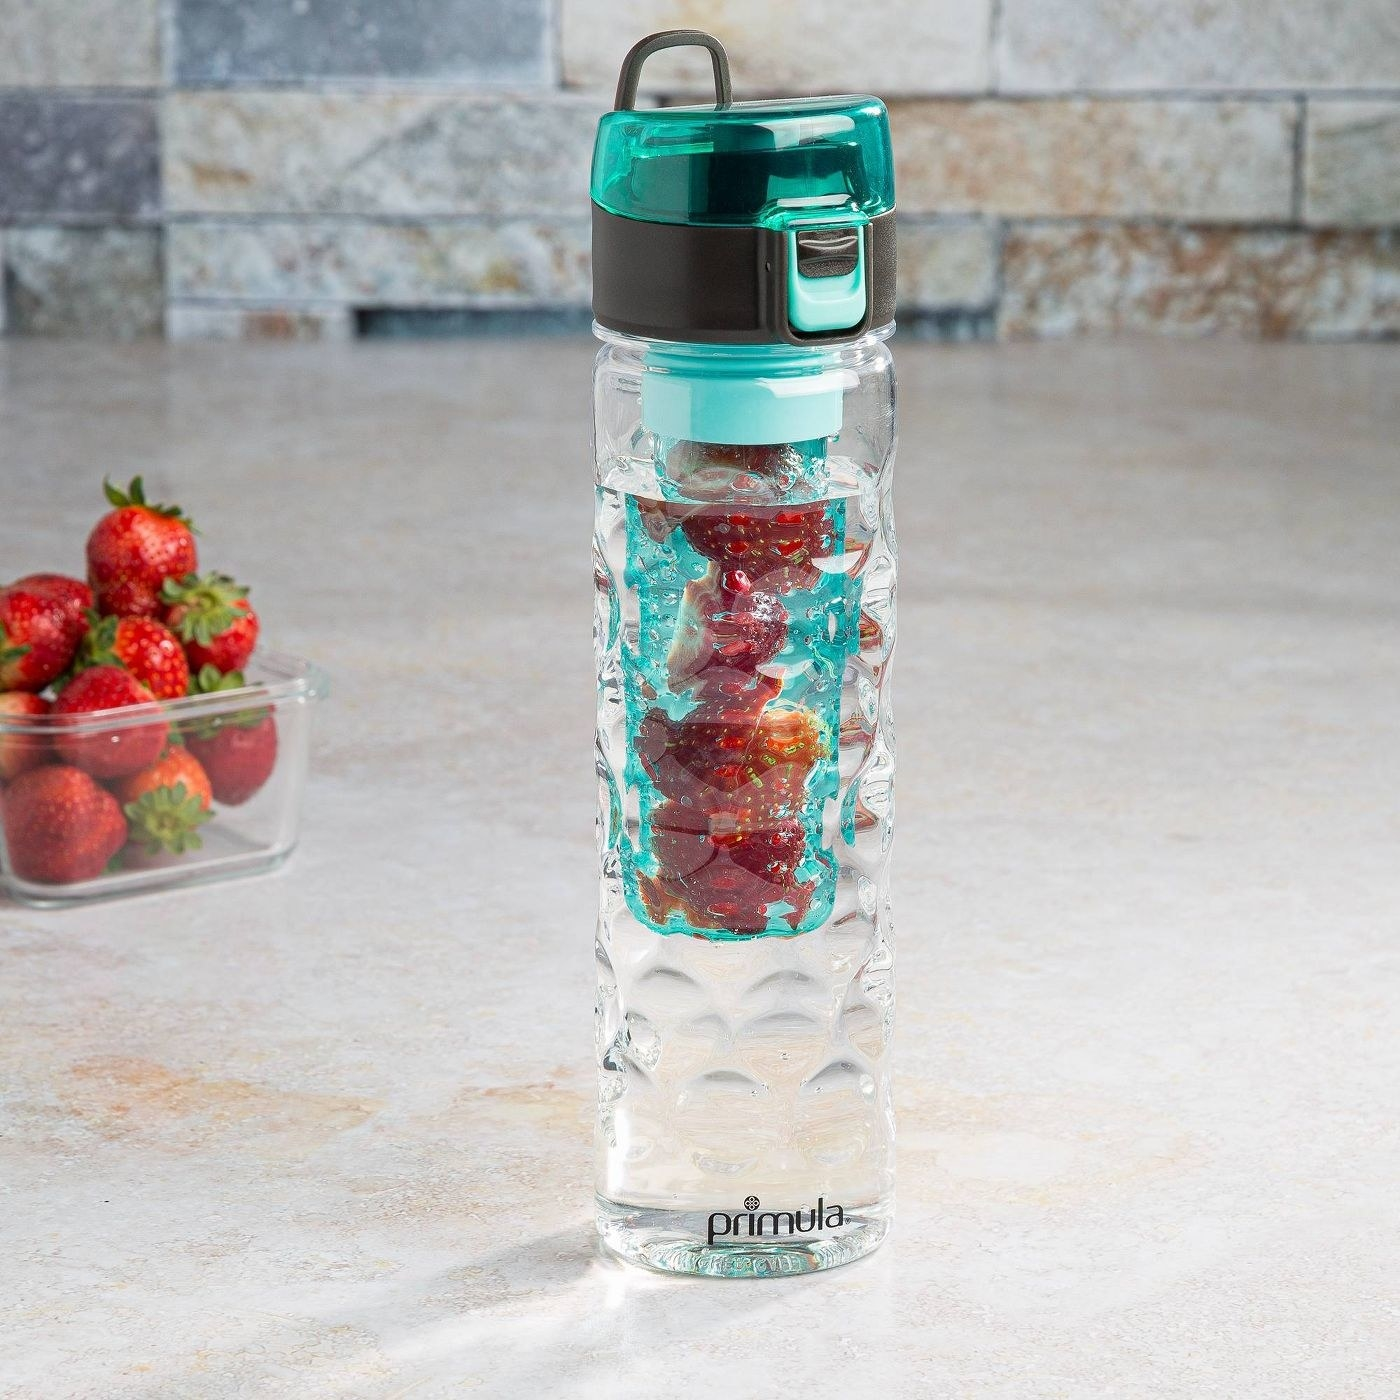 clear water bottle with a blue infuser that has fruit in it